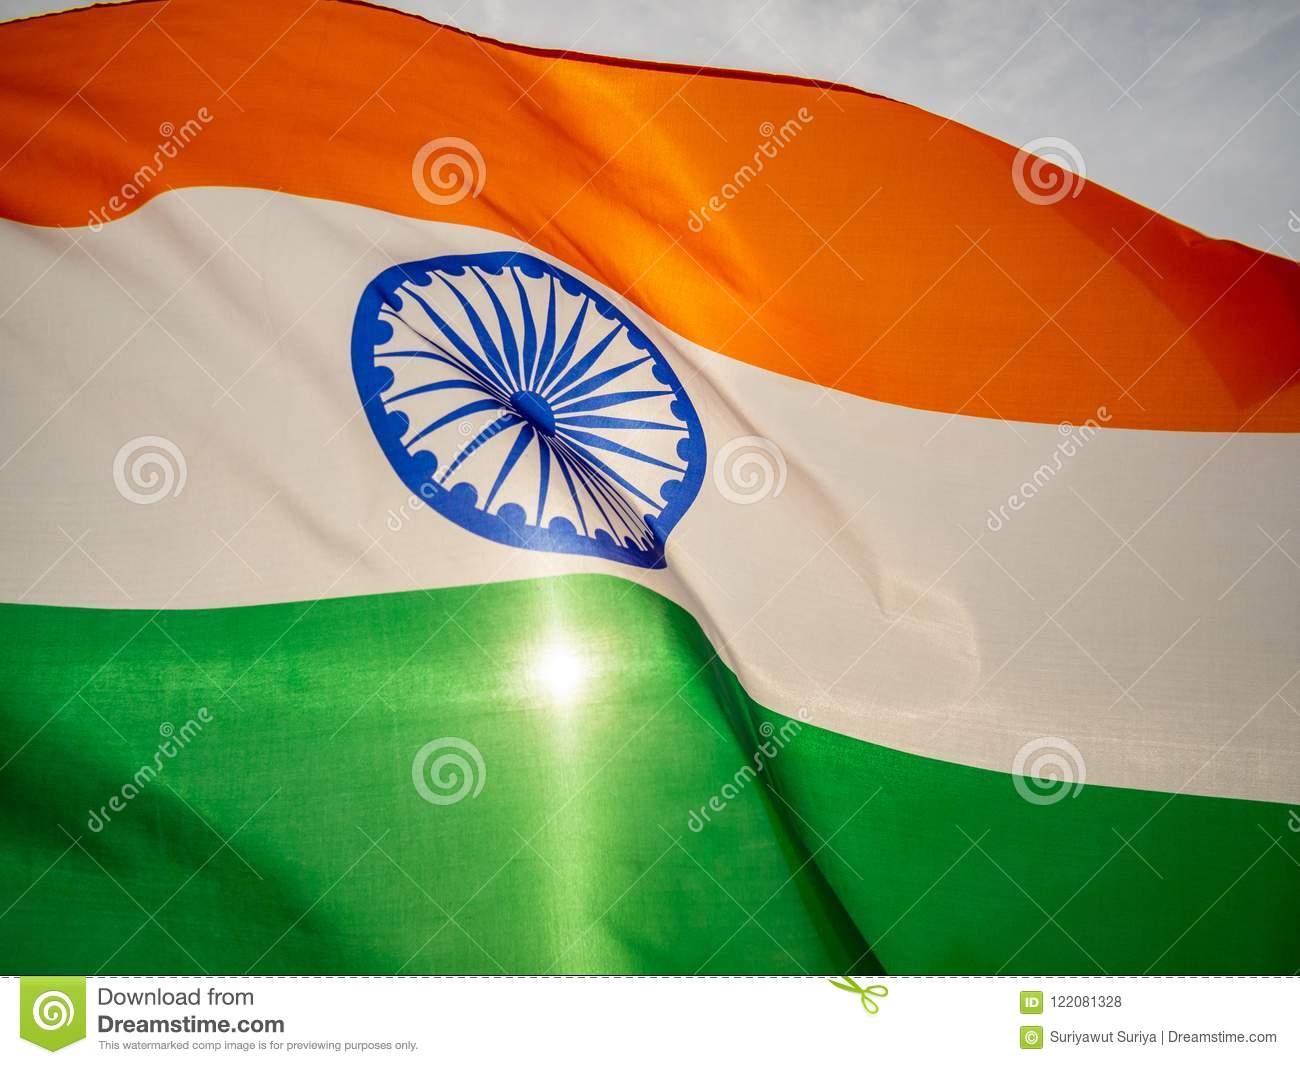 12 323 Indian Flag Photos Free Royalty Free Stock Photos From Dreamstime